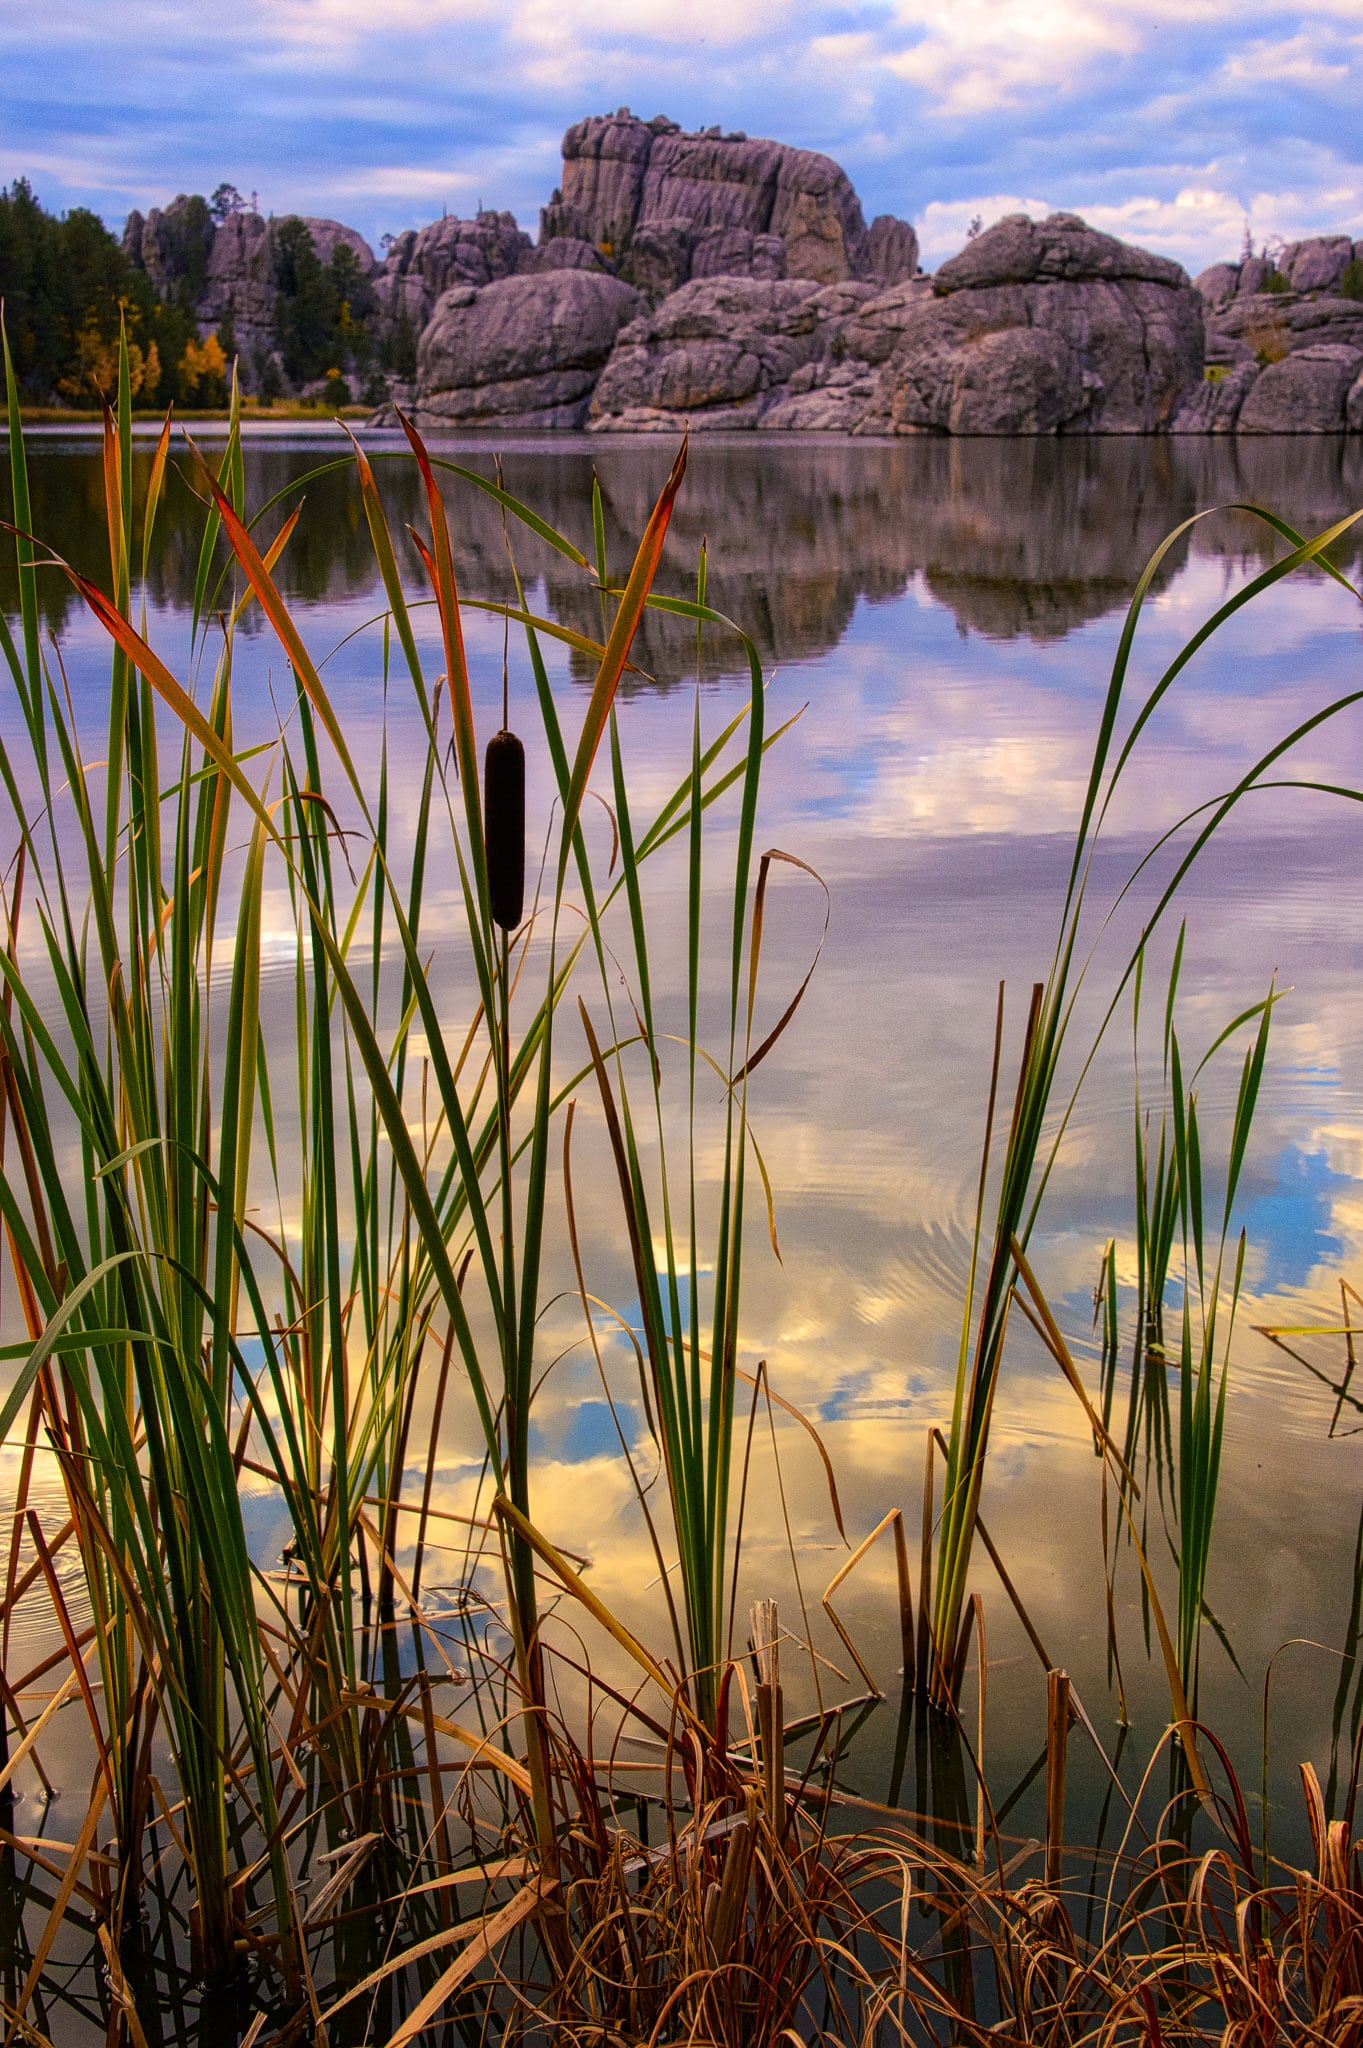 Clouds and granite rock formations are reflected in the still water of Sylvan Lake, with cattails in the foreground.